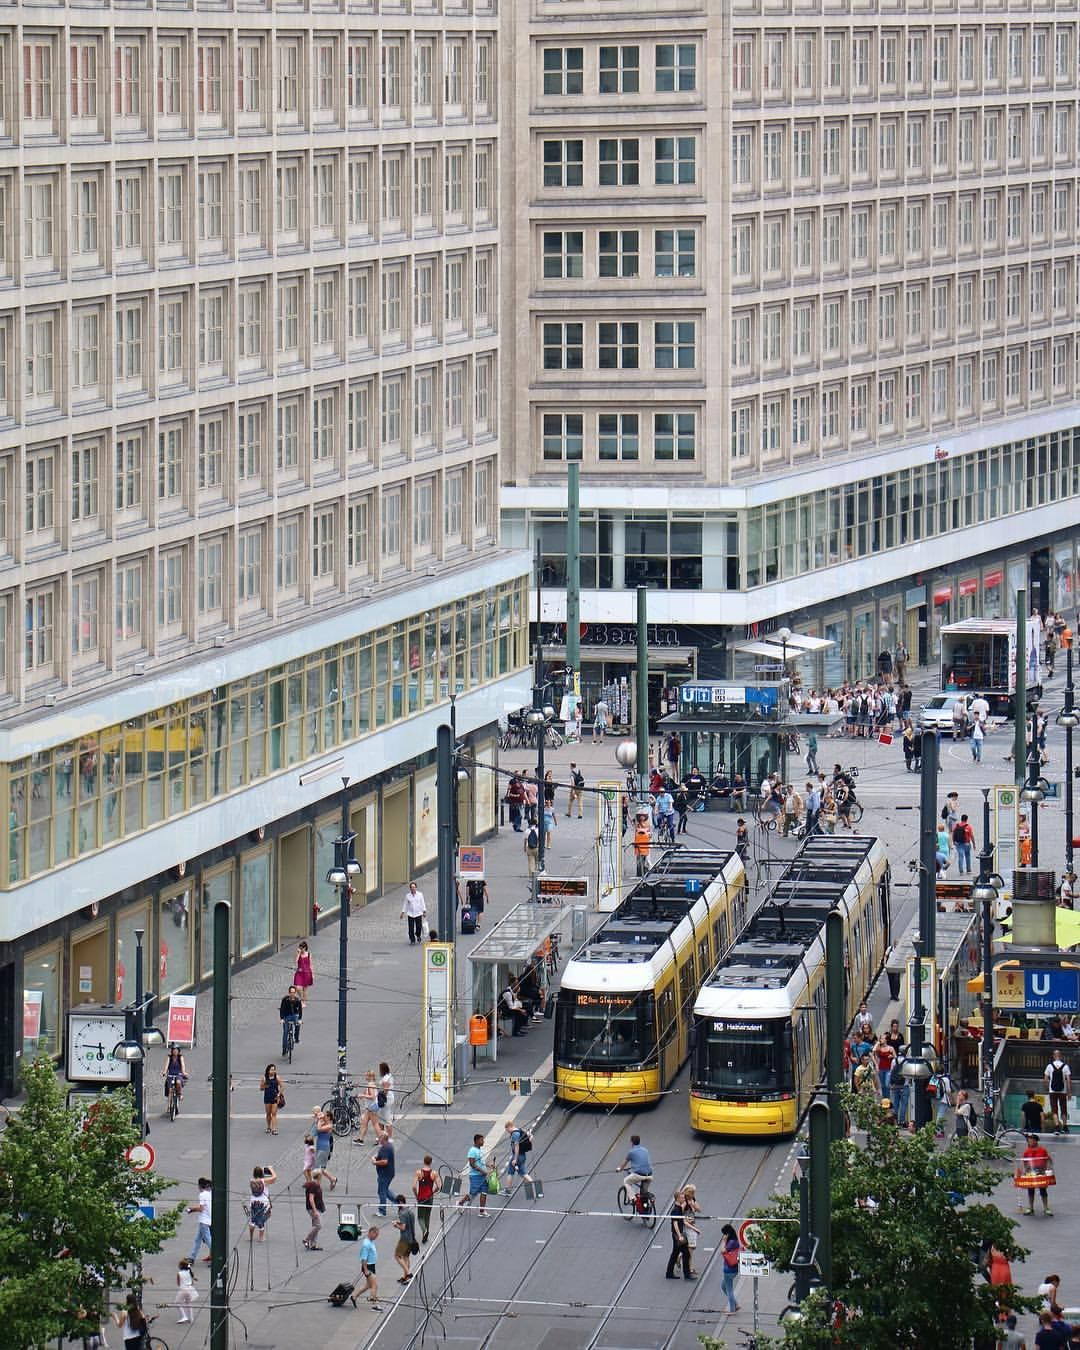 A Different Perspective Berlin Alexanderplatz I Wish You All A Happy Weekend